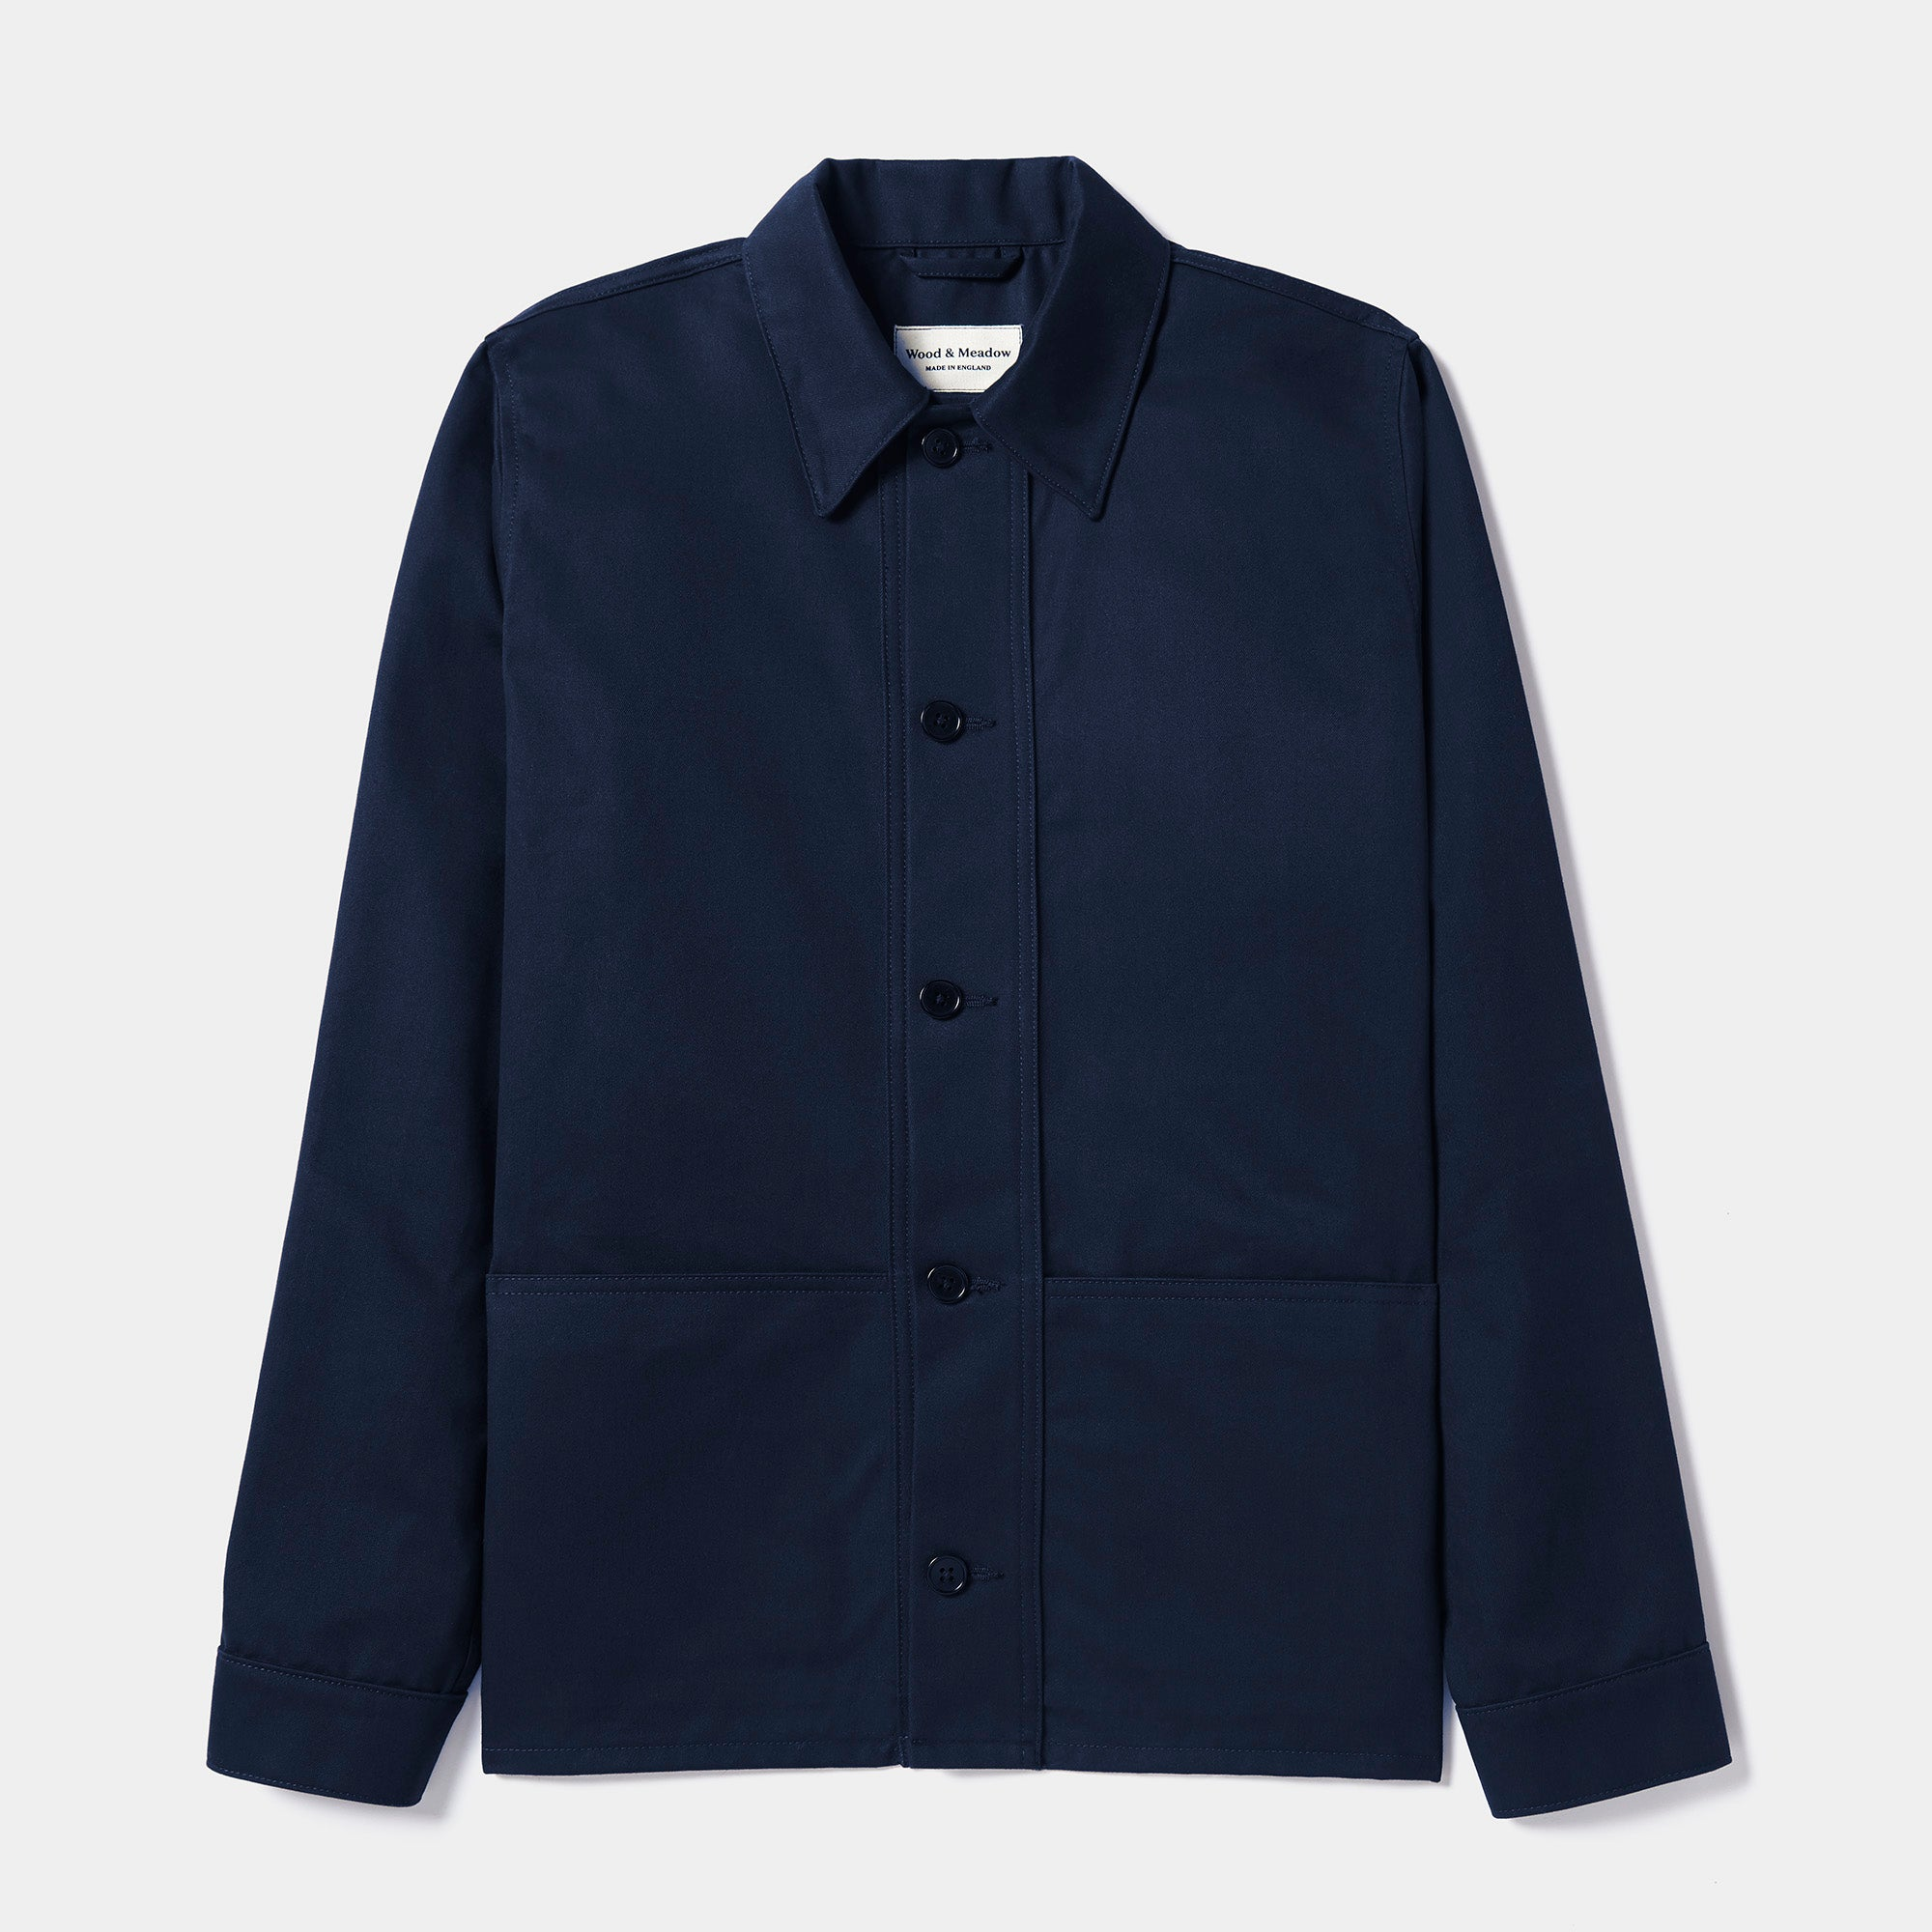 Wood & Meadow Work Jacket in Dark Navy Cotton Drill - Gardener's Jacket